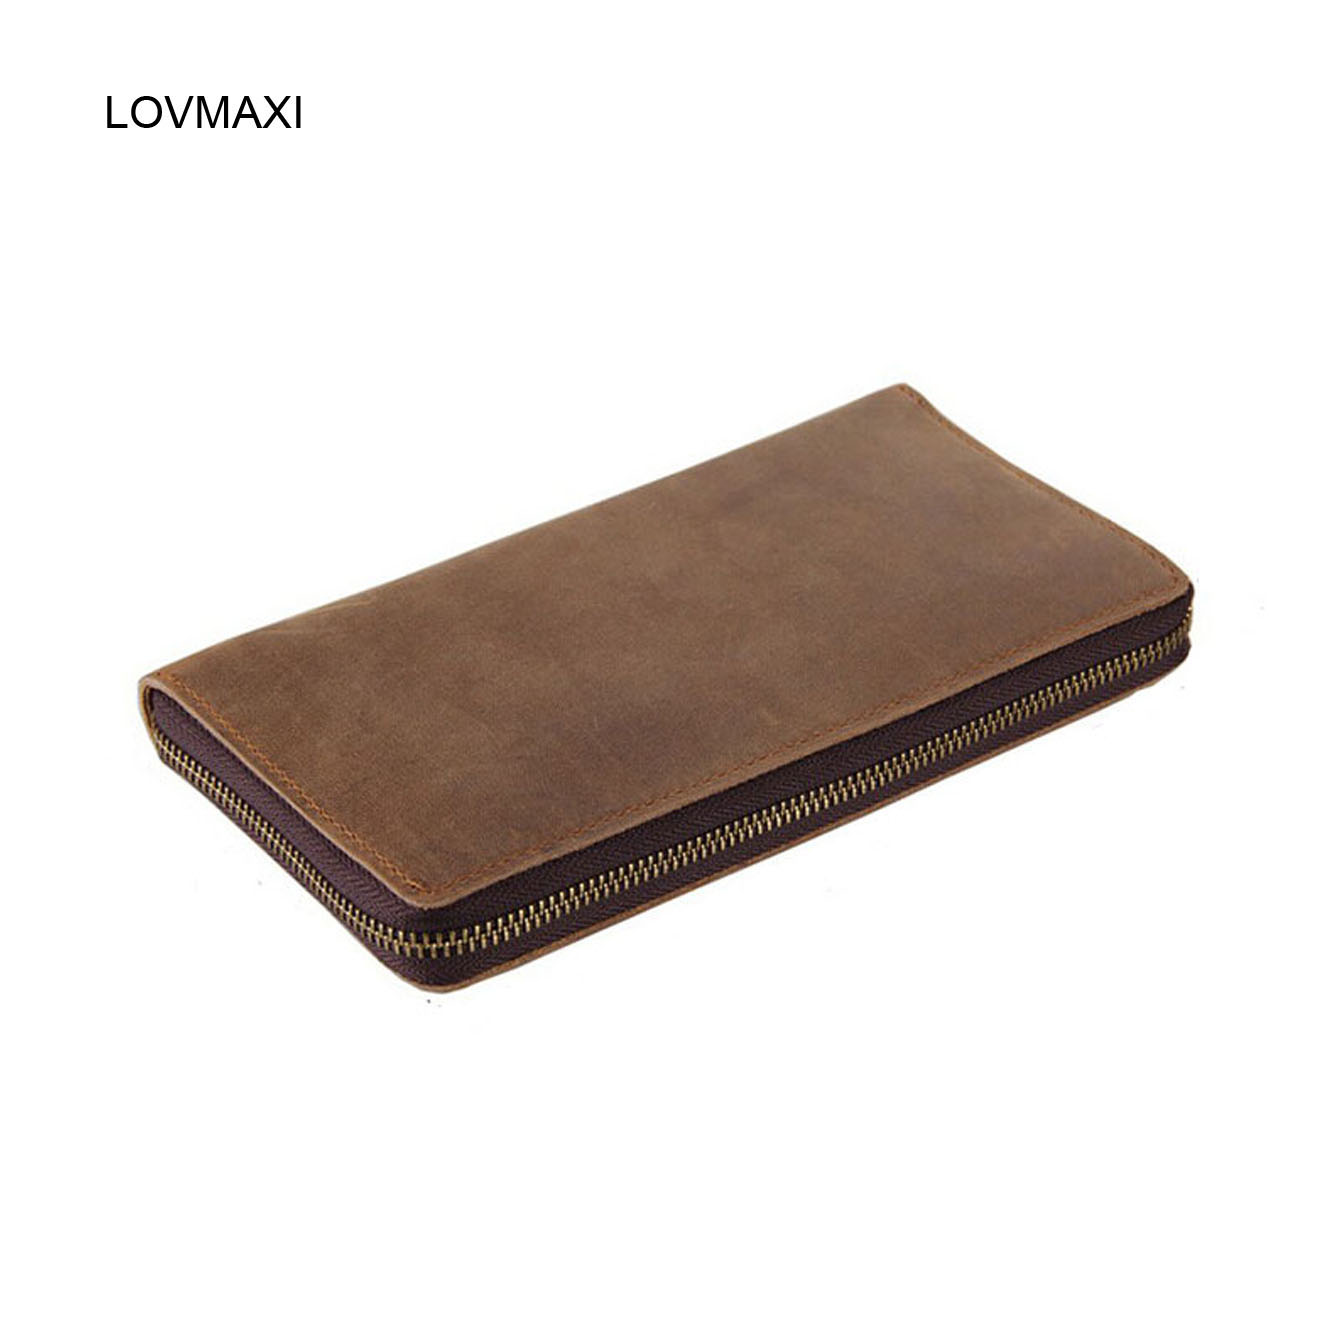 ФОТО Russia style Male vintage clutch bags simple slim design Polished leather clutch bag men crazy horse leather purse 8050